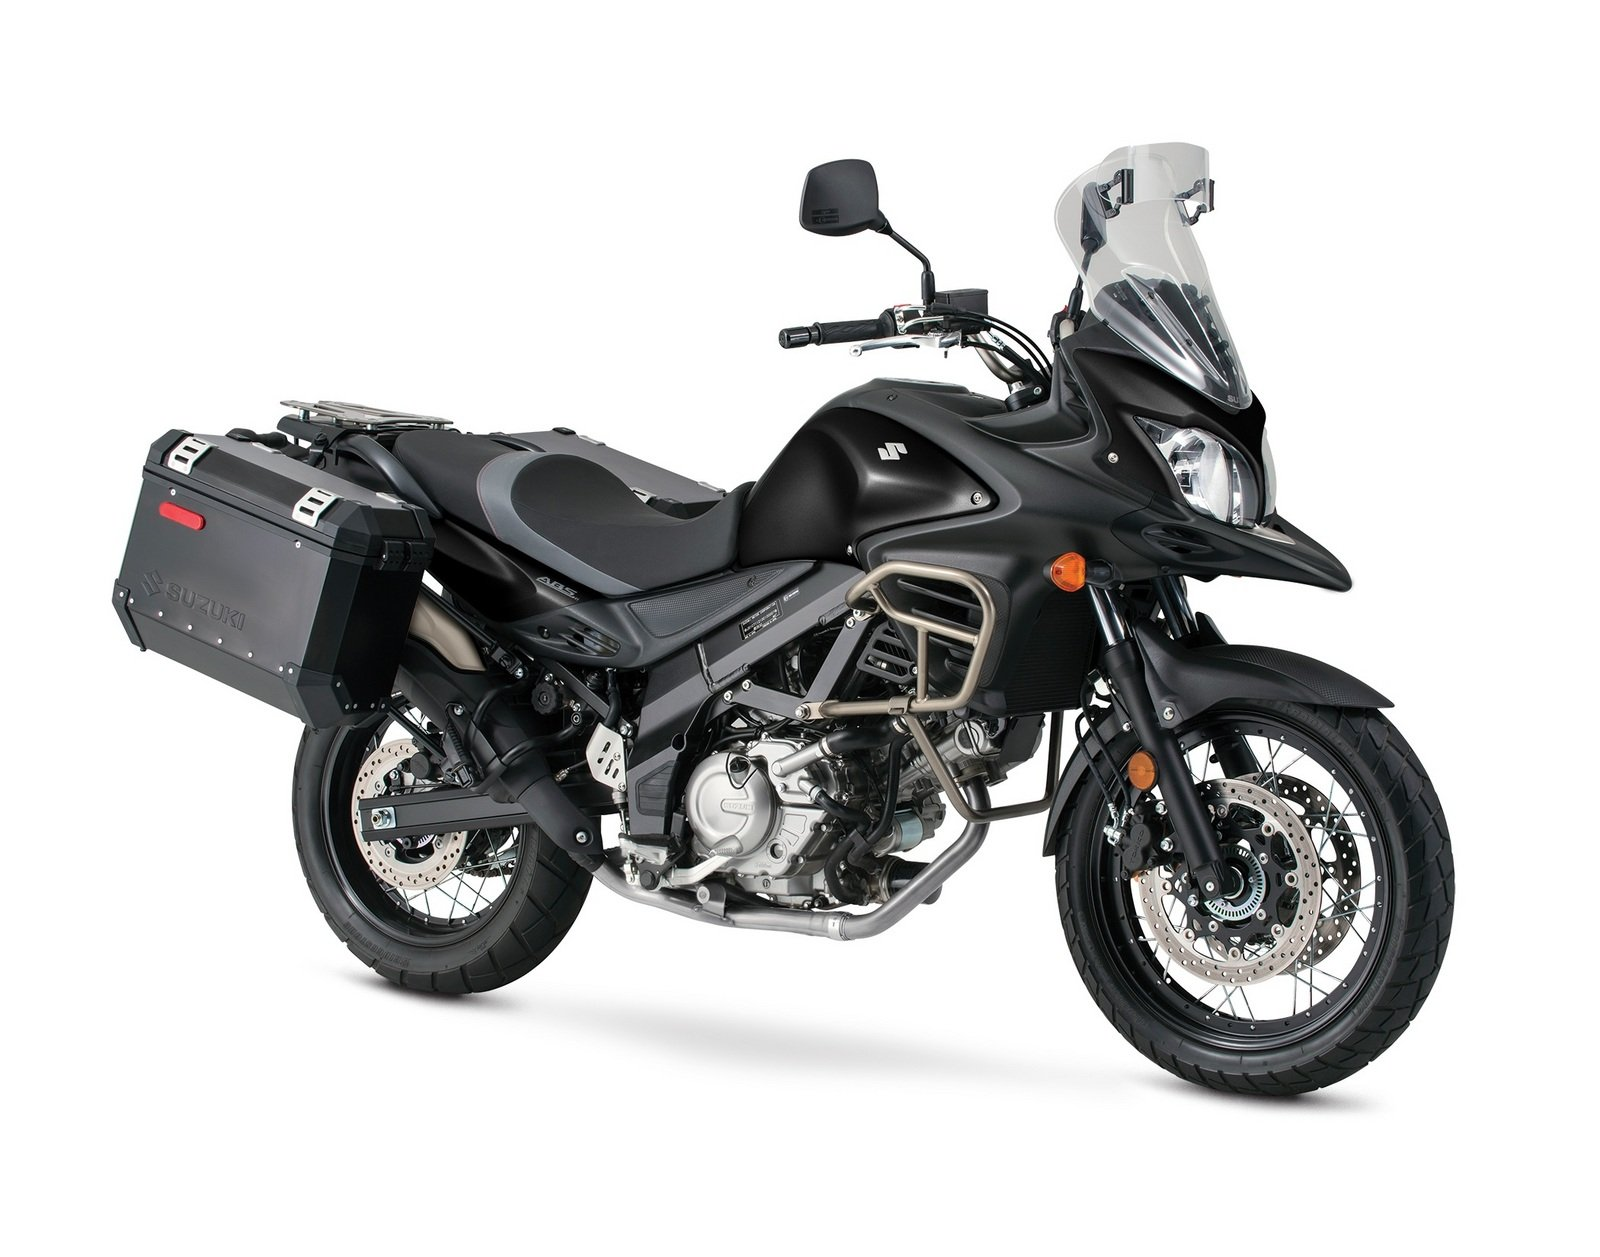 2015 2016 suzuki v strom 650 abs 650xt abs picture 641803 motorcycle review top speed. Black Bedroom Furniture Sets. Home Design Ideas